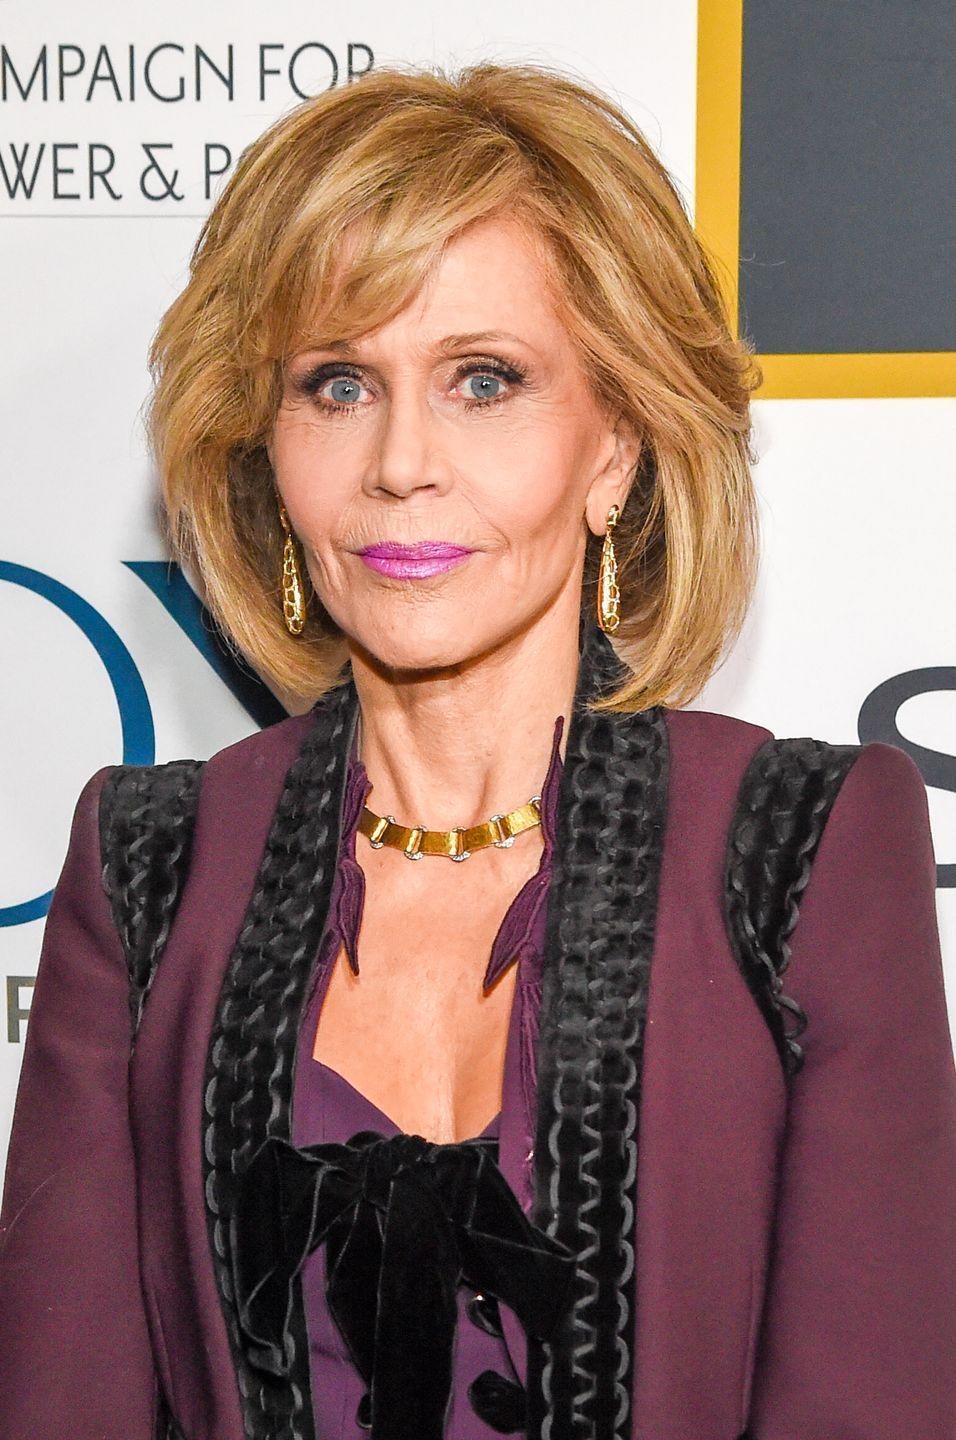 """<p>In 2010, the acting legend candidly wrote about plastic surgery on <a href=""""https://www.janefonda.com/category/my-blog/"""" rel=""""nofollow noopener"""" target=""""_blank"""" data-ylk=""""slk:her blog"""" class=""""link rapid-noclick-resp"""">her blog</a>: """"Bob Evans complimented me on my new, short haircut, and I said: 'Thanks. I just had some 'work' done on my chin and neck and had the bags taken away from under my eyes so I decided it would be good to get a new hair cut so people will think it's my new hair.' He thought that was so funny he actually toasted me for doing what he said he'd never heard anyone do before: admit they'd had work done. I was planning on blogging about it anyway, so who cares? Now, I look more like how I feel. I'm glad I did it.""""</p>"""